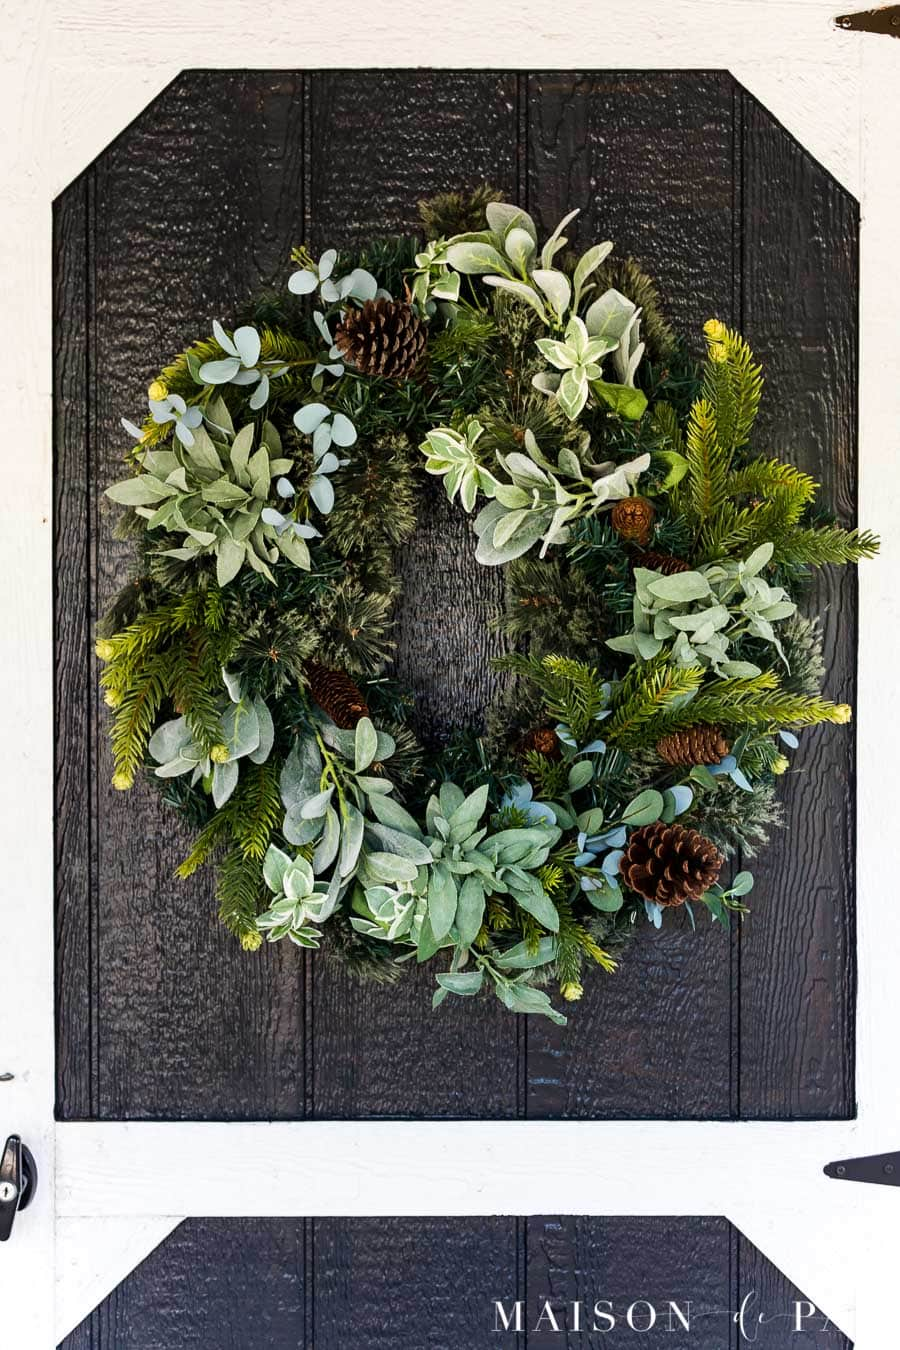 Full green wreath on a black barn door with white trim